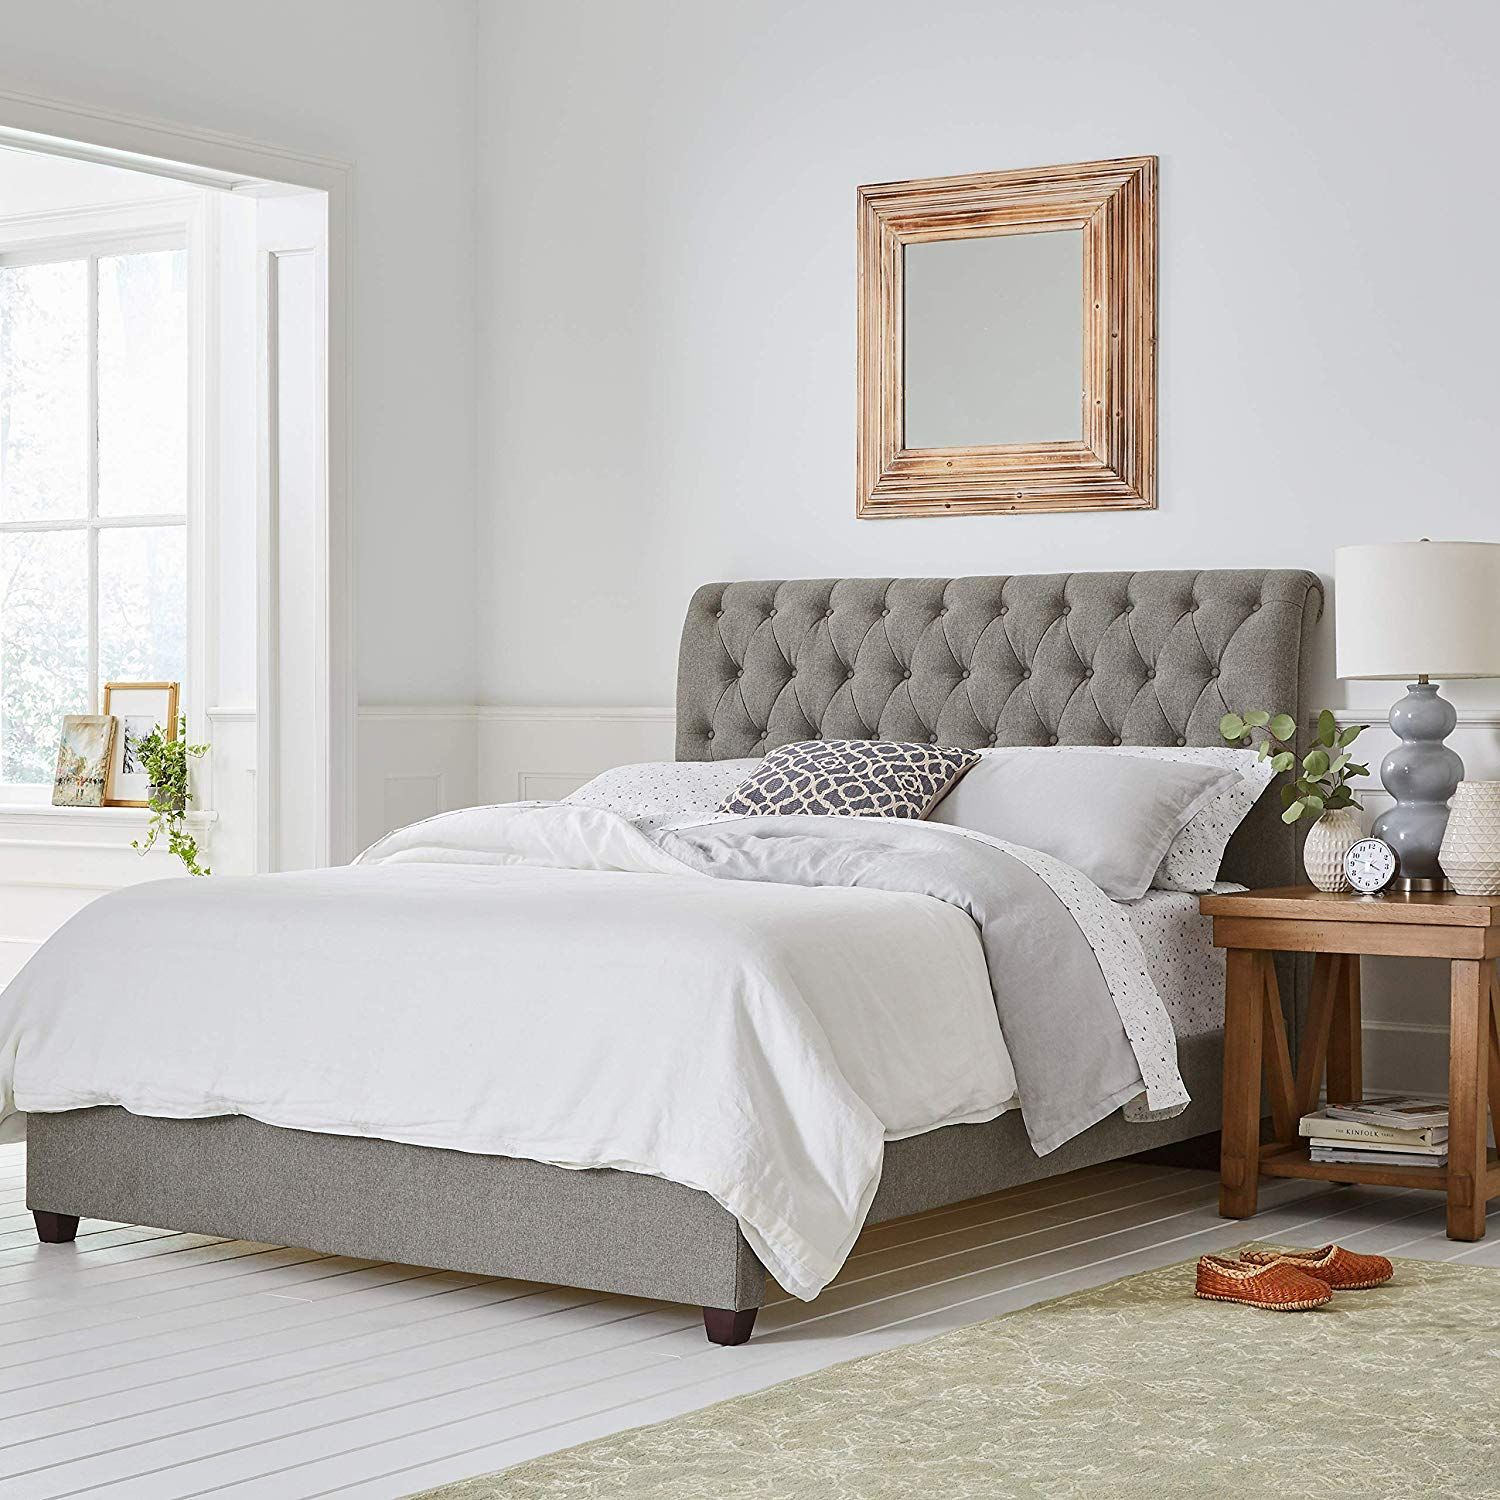 This Upholstered Bed Has It All Style Durability And Coziness